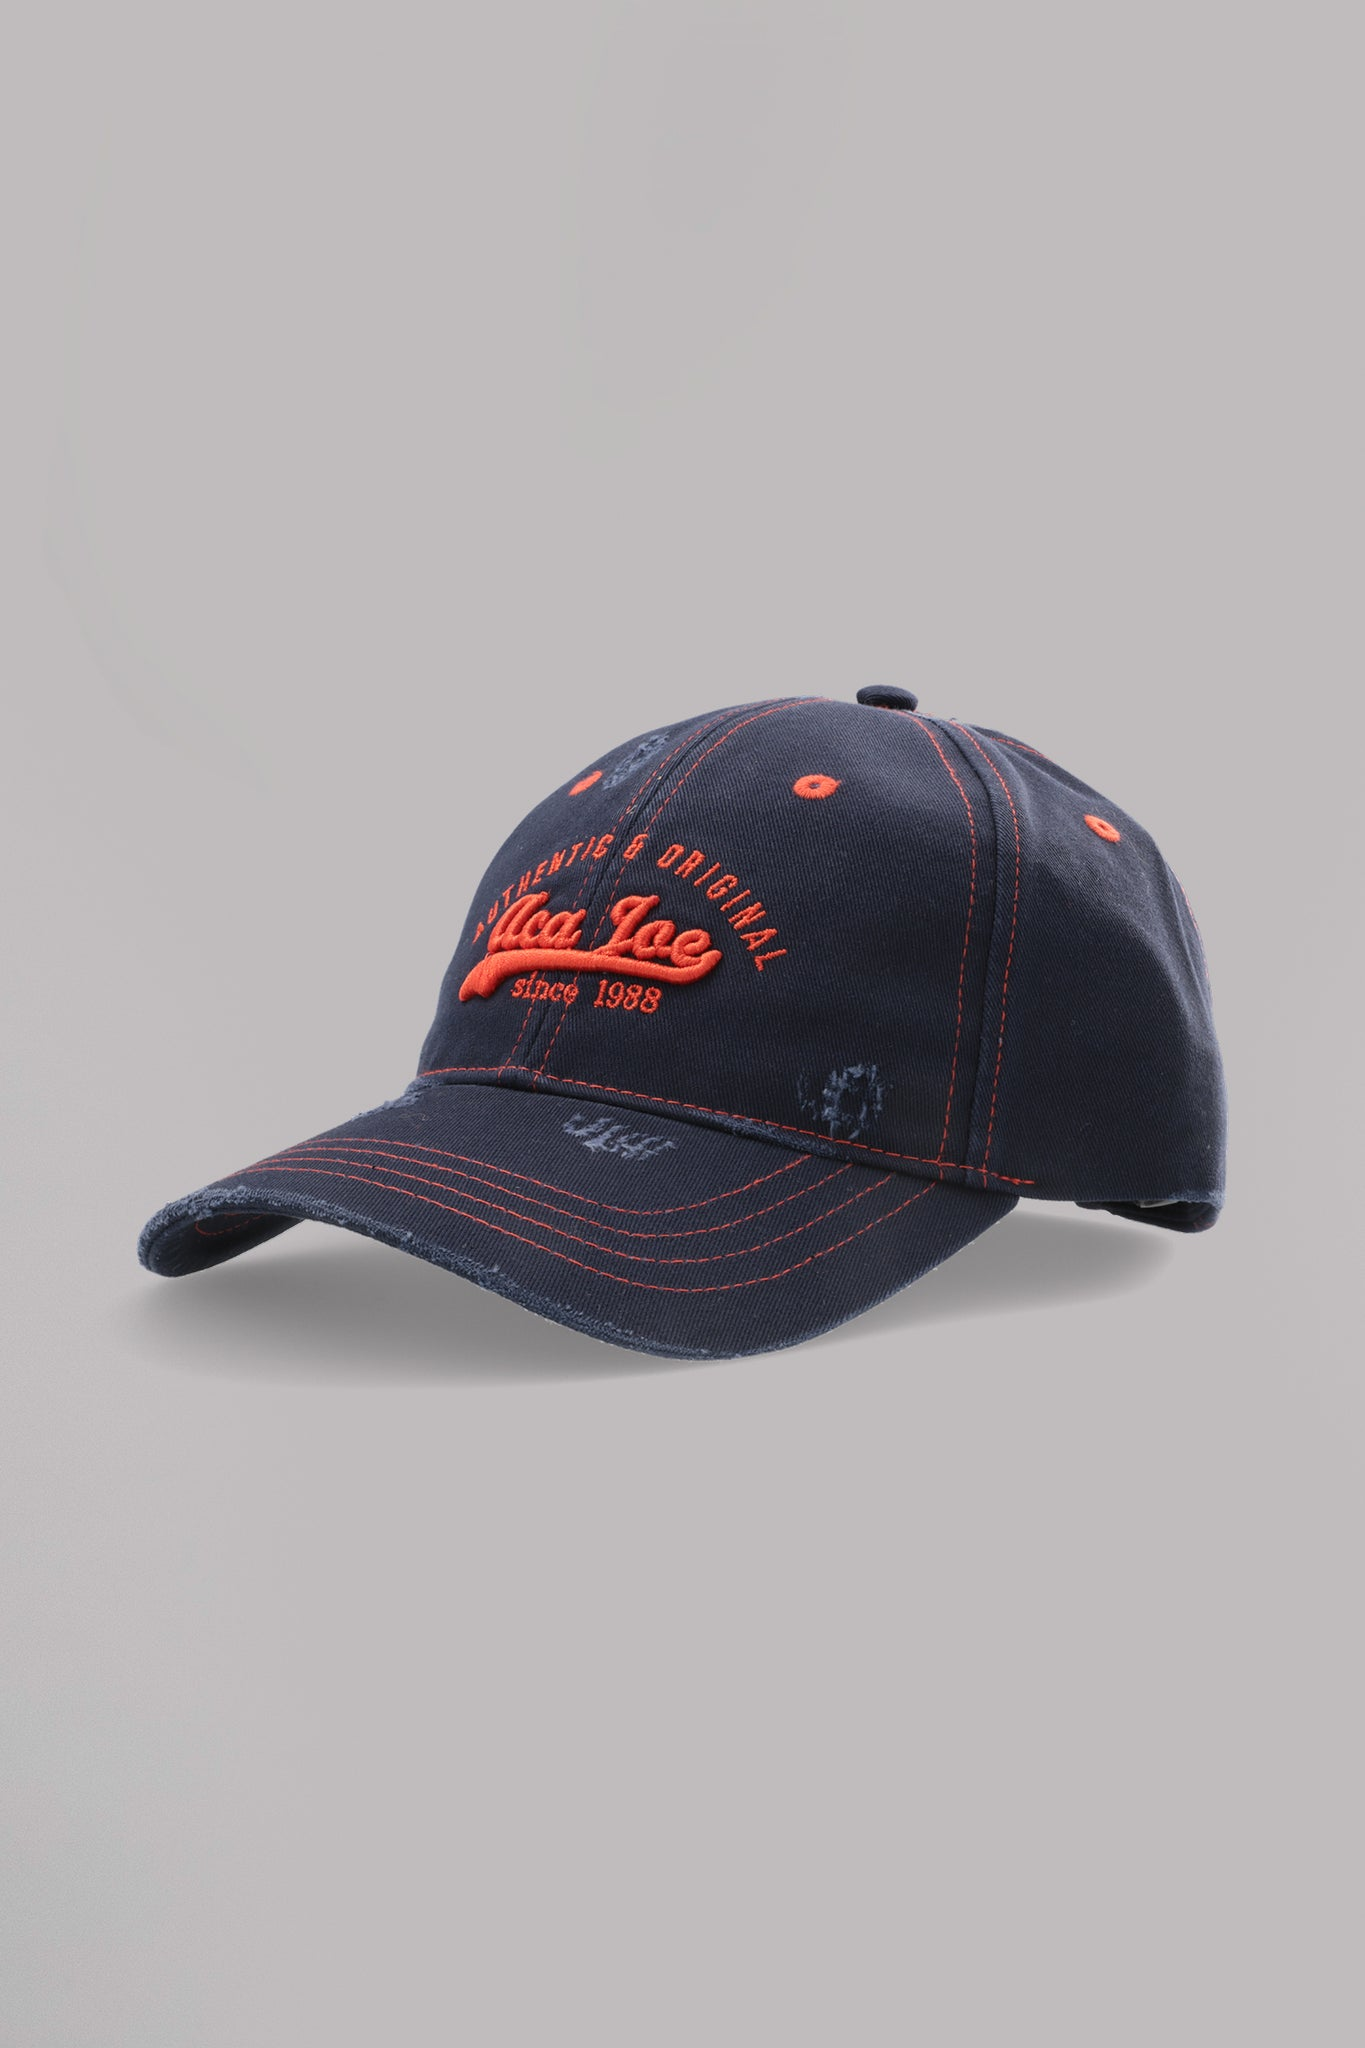 Retro Logo Since 1988 Cap